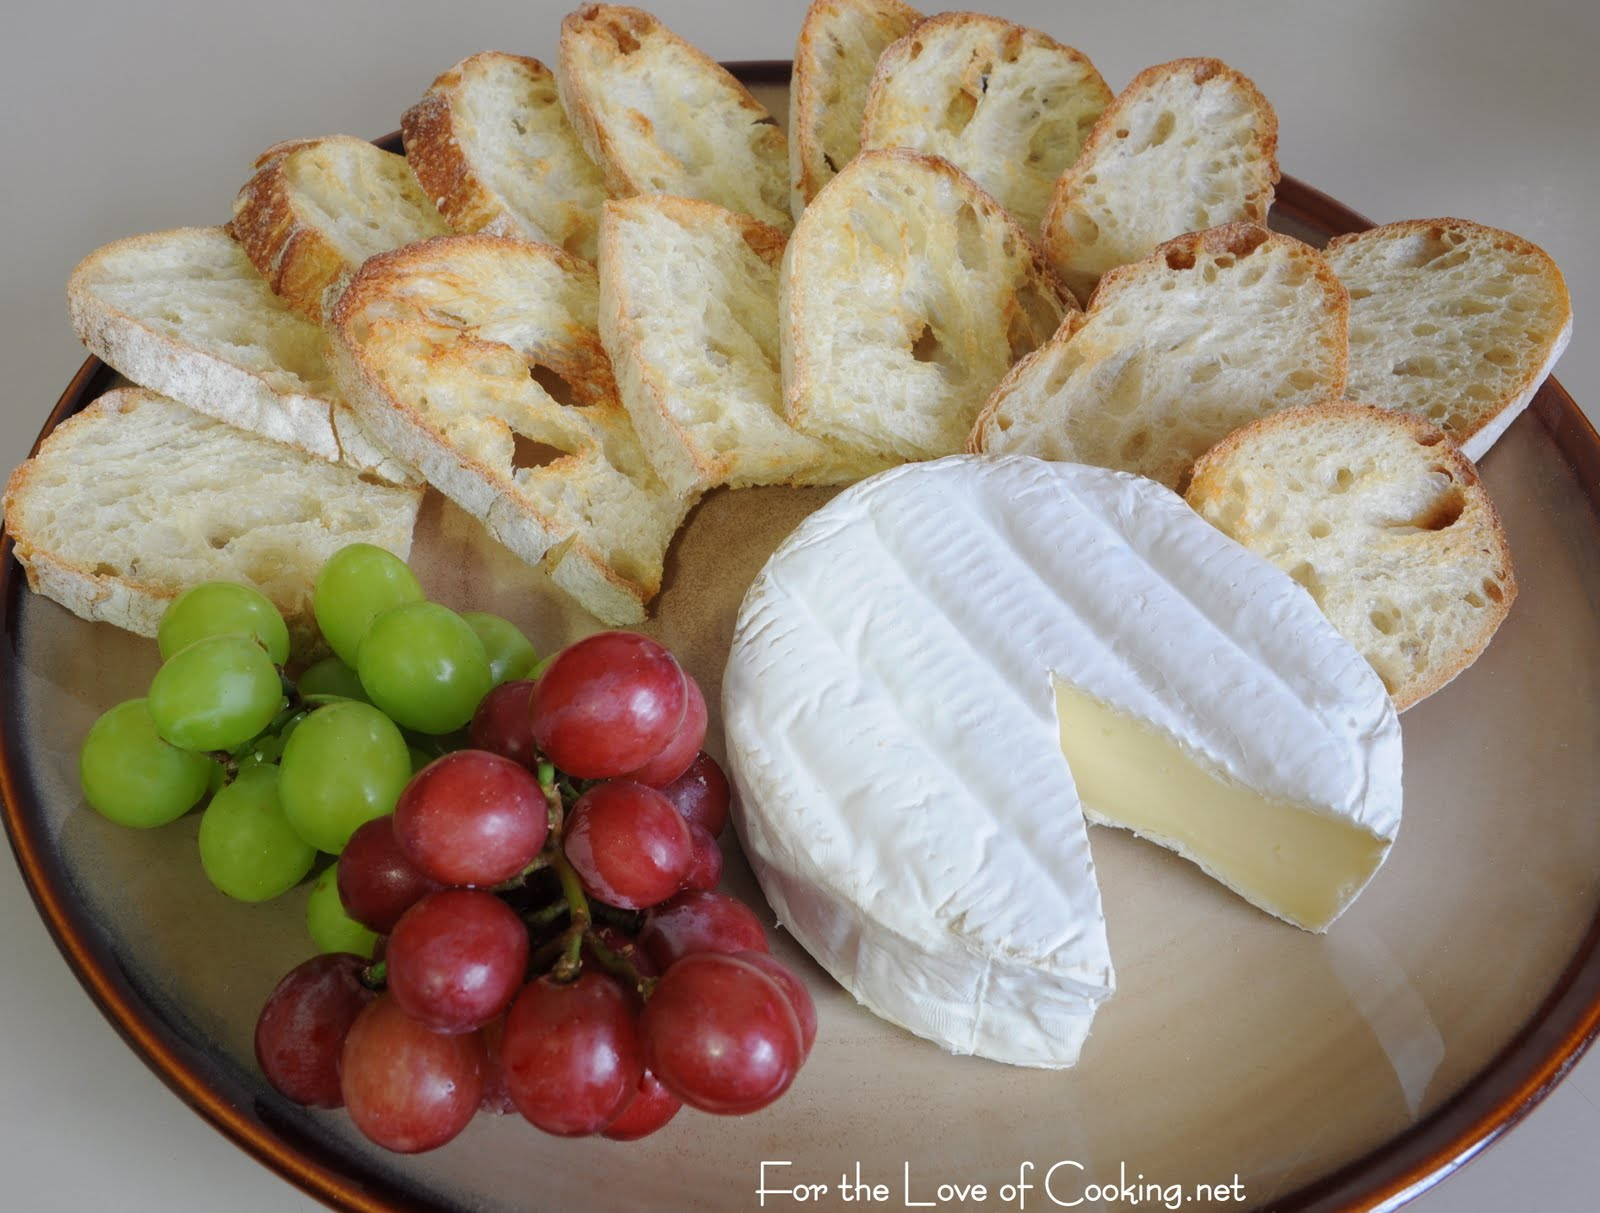 Brie Served With Crostini And Grapes For The Love Of Cooking